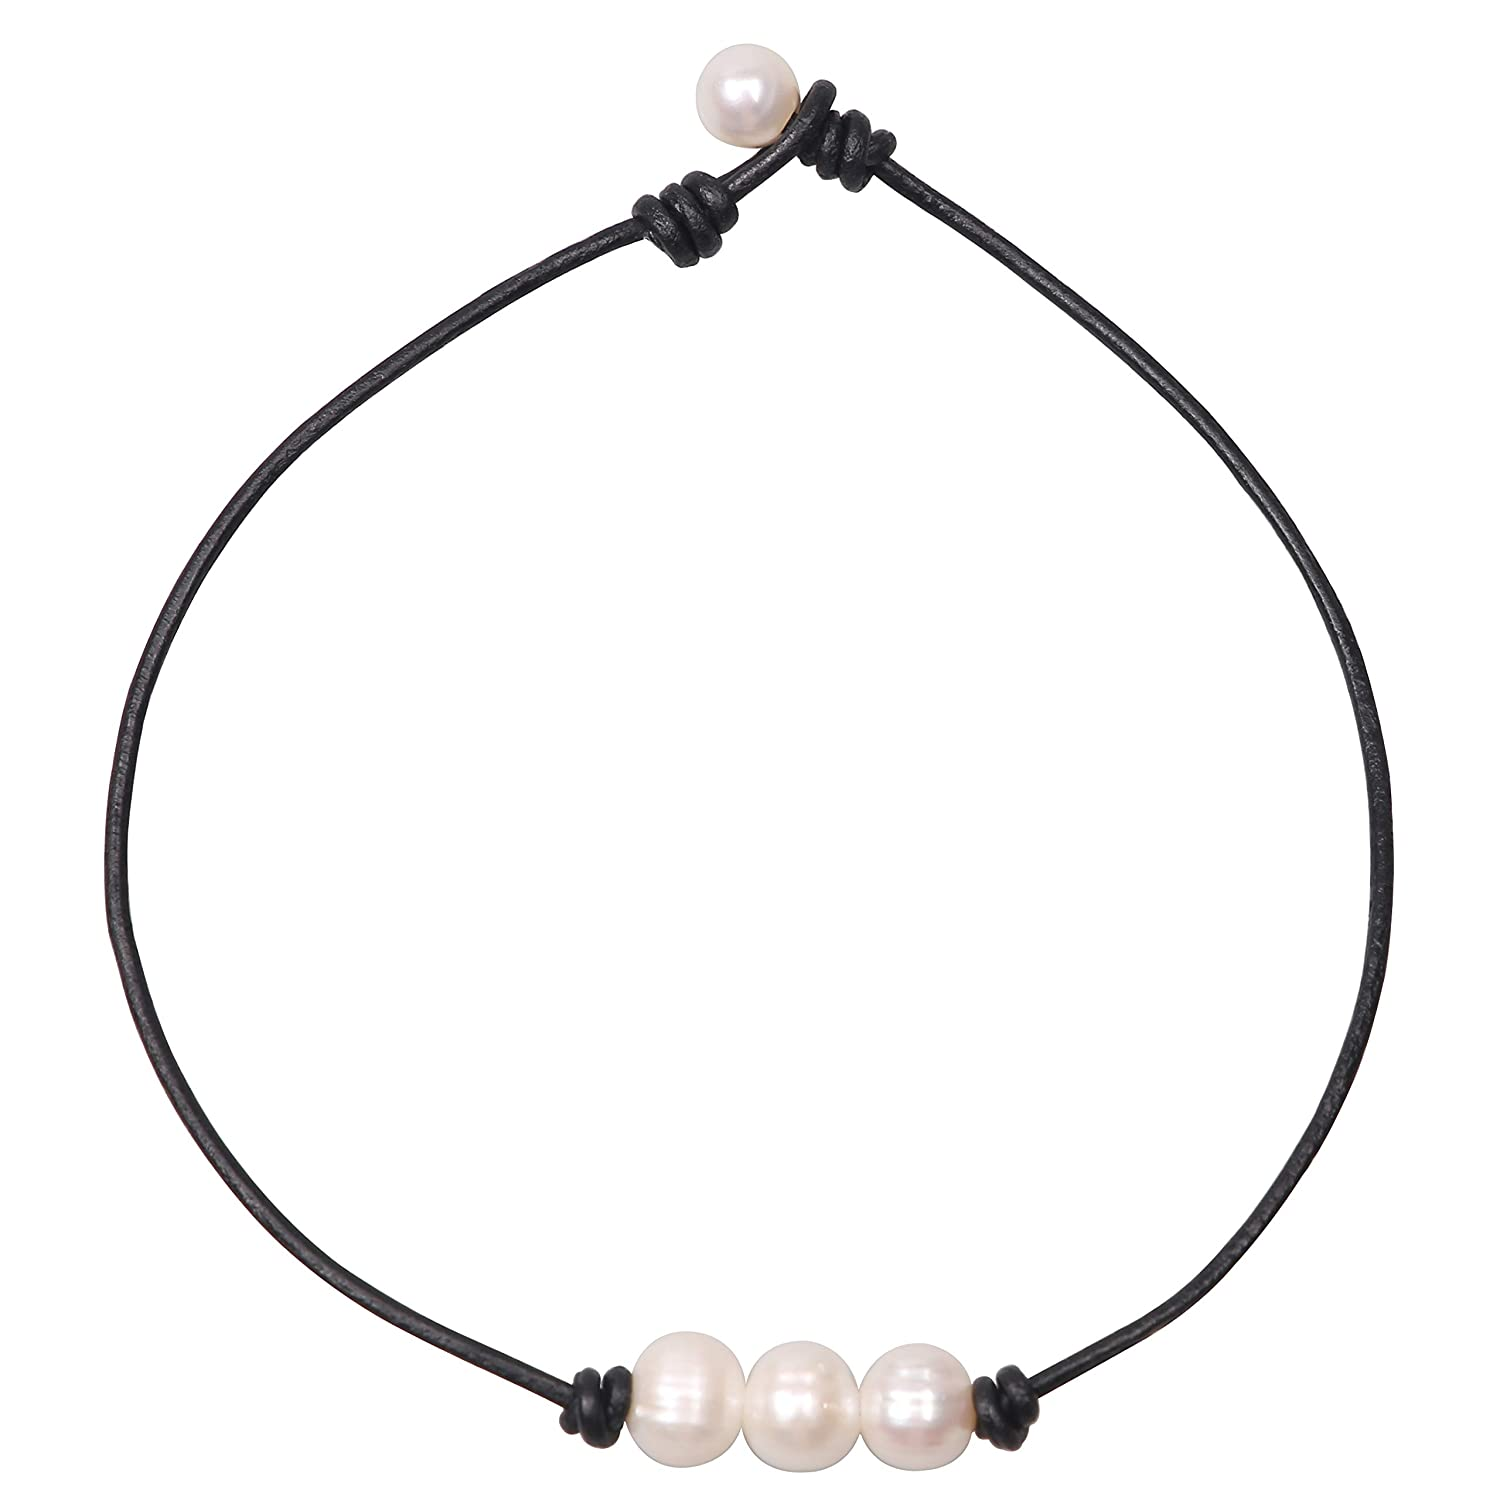 b46e08606f0f1 Charming Collection Women White 3 Cultured Freshwater Pearls Choker  Necklace on Genuine Leather Cord Knotted Jewelry